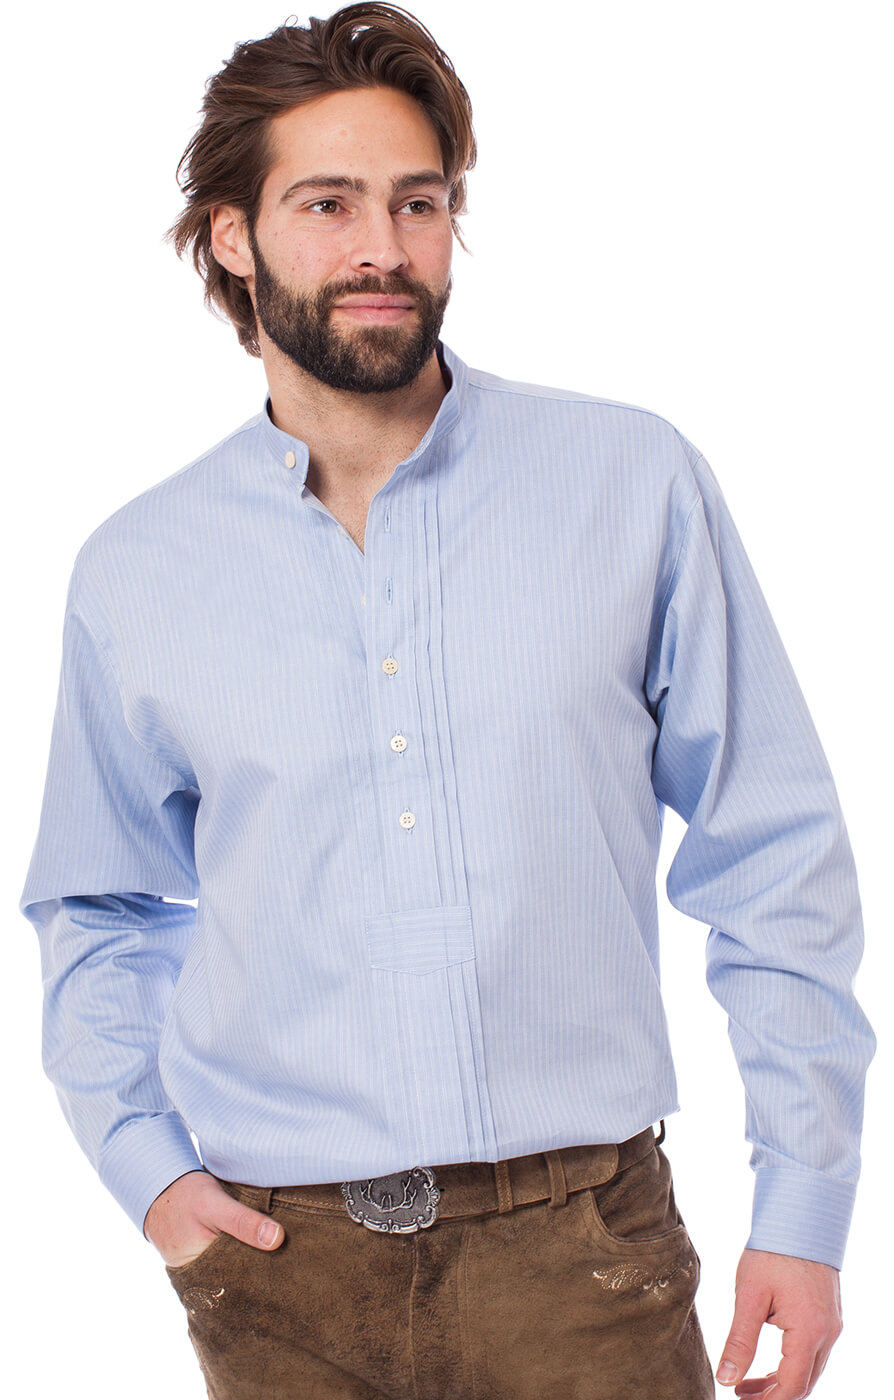 German traditional shirt 920001-3485-41 lightblue von OS-Trachten